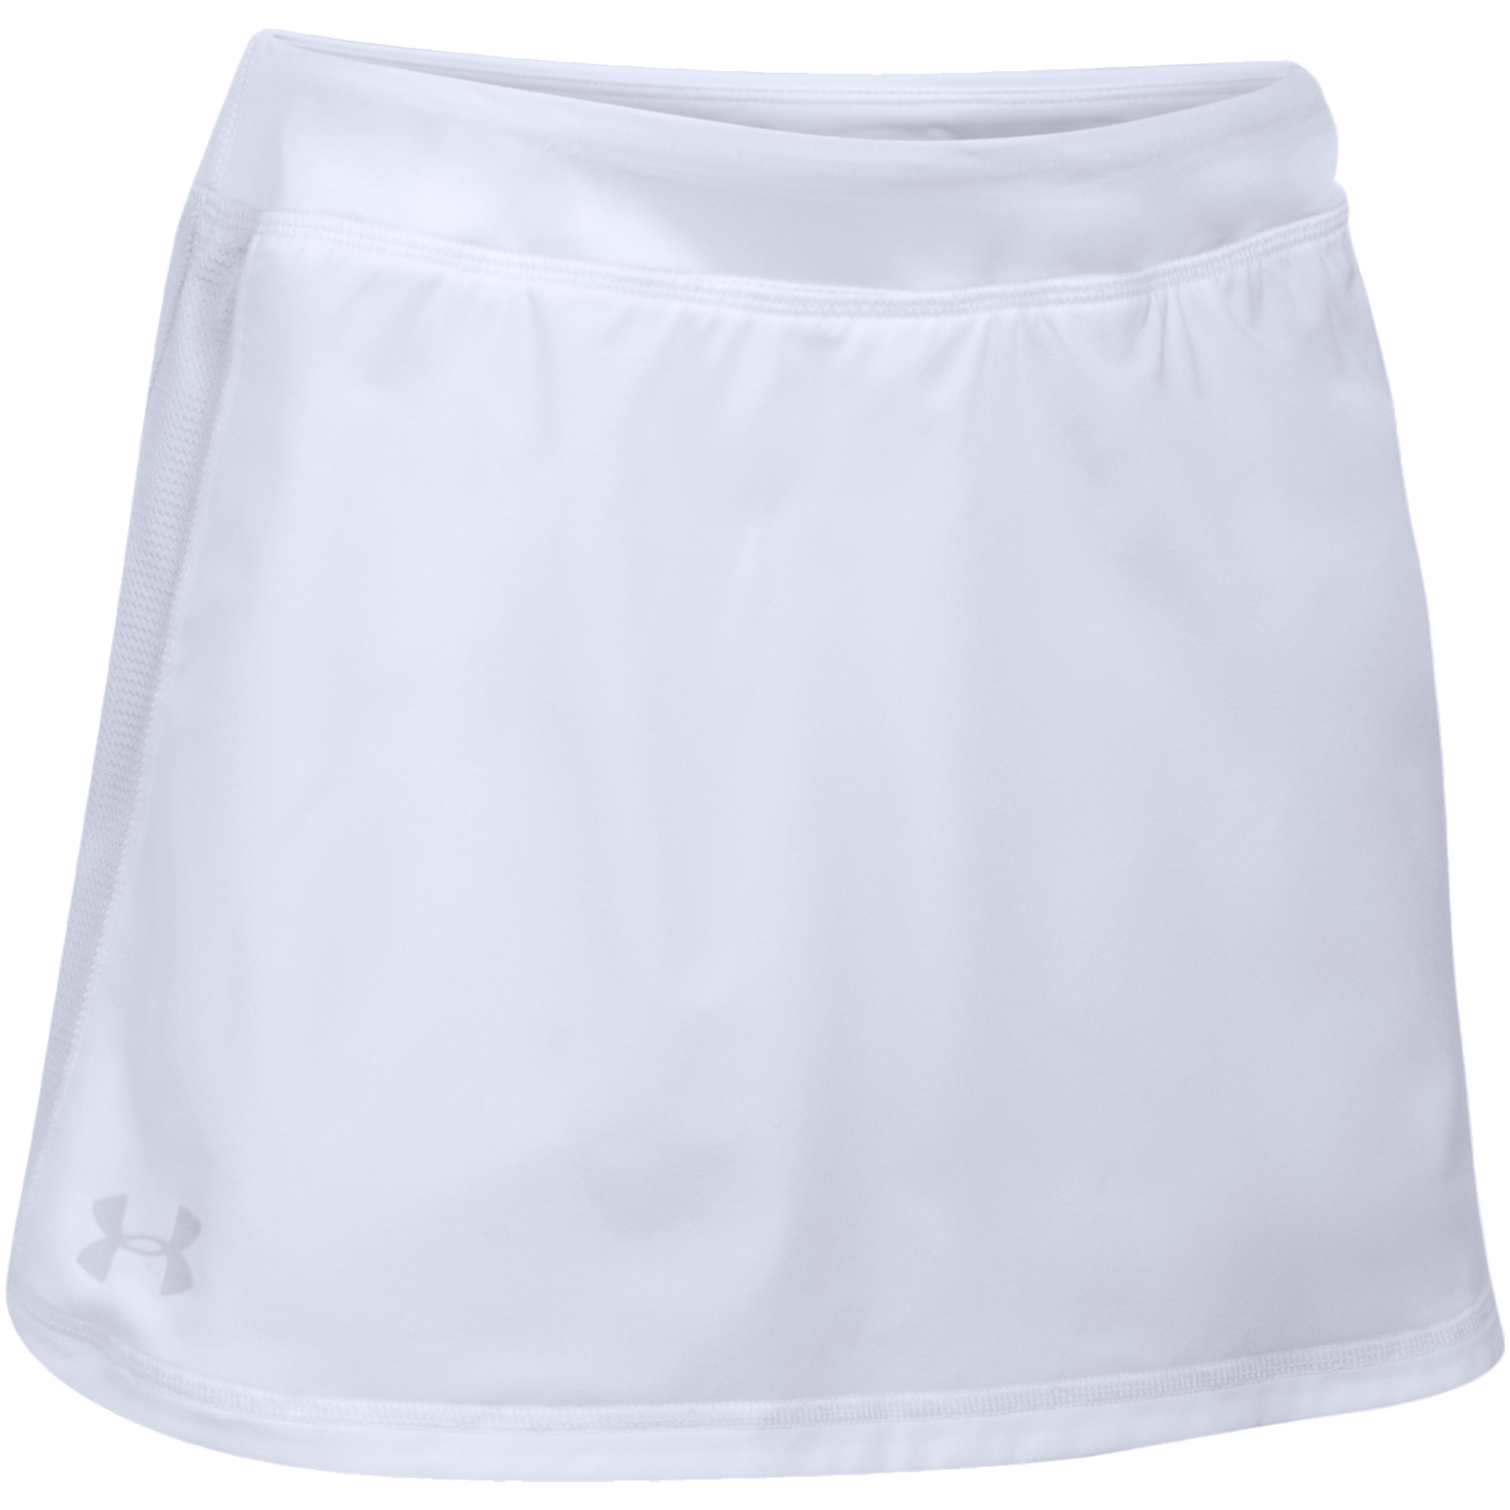 Under Armour Girls' Play Up Training Skort